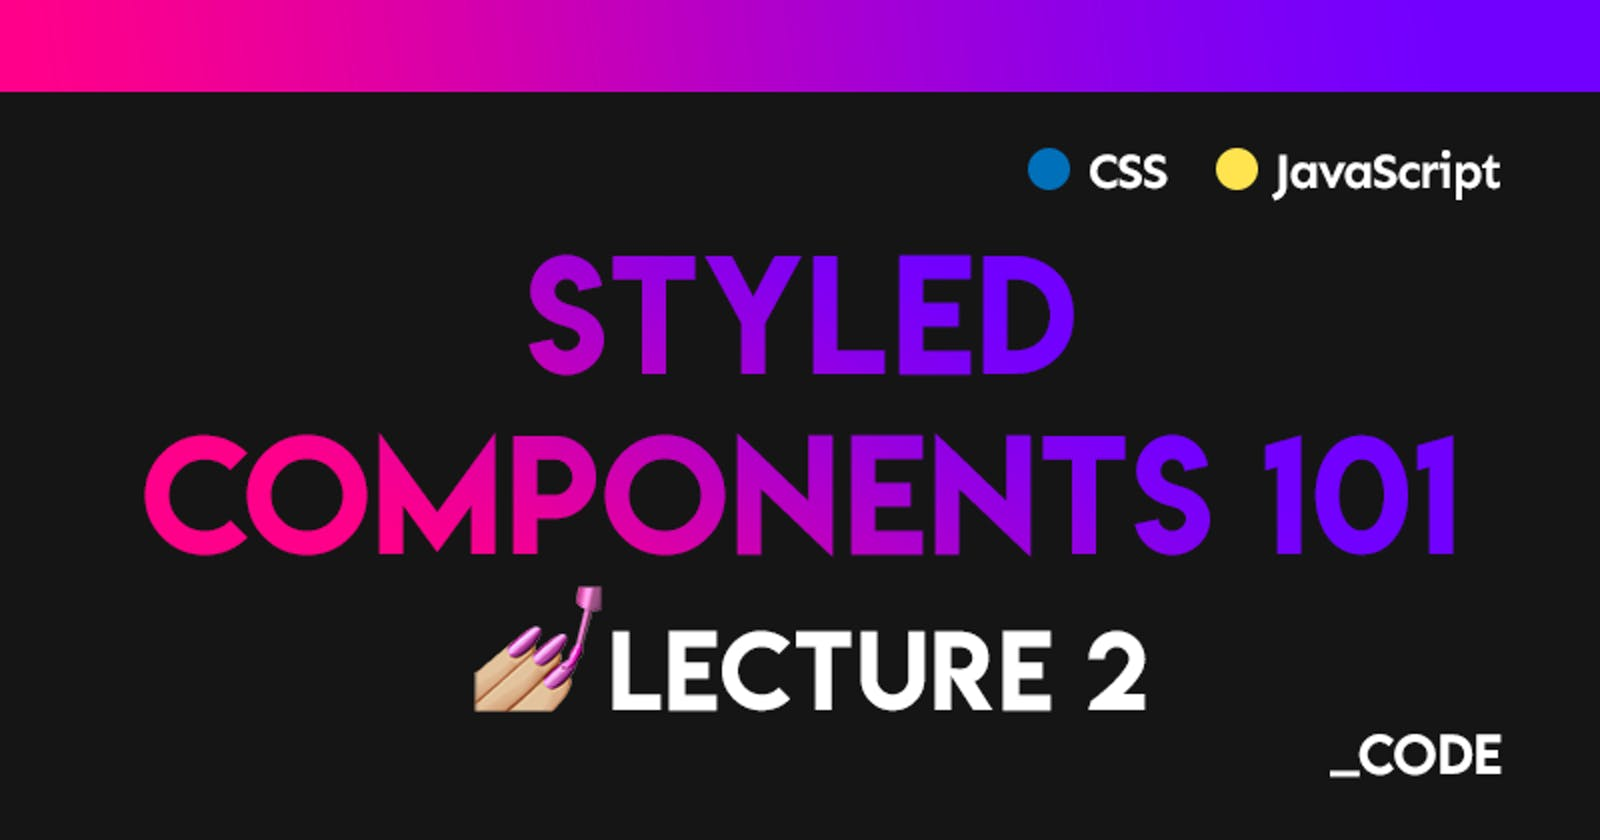 Styled Components 101 💅 Lecture 2: Creating a theme + Light/Dark theme toggler example ☀️🌙